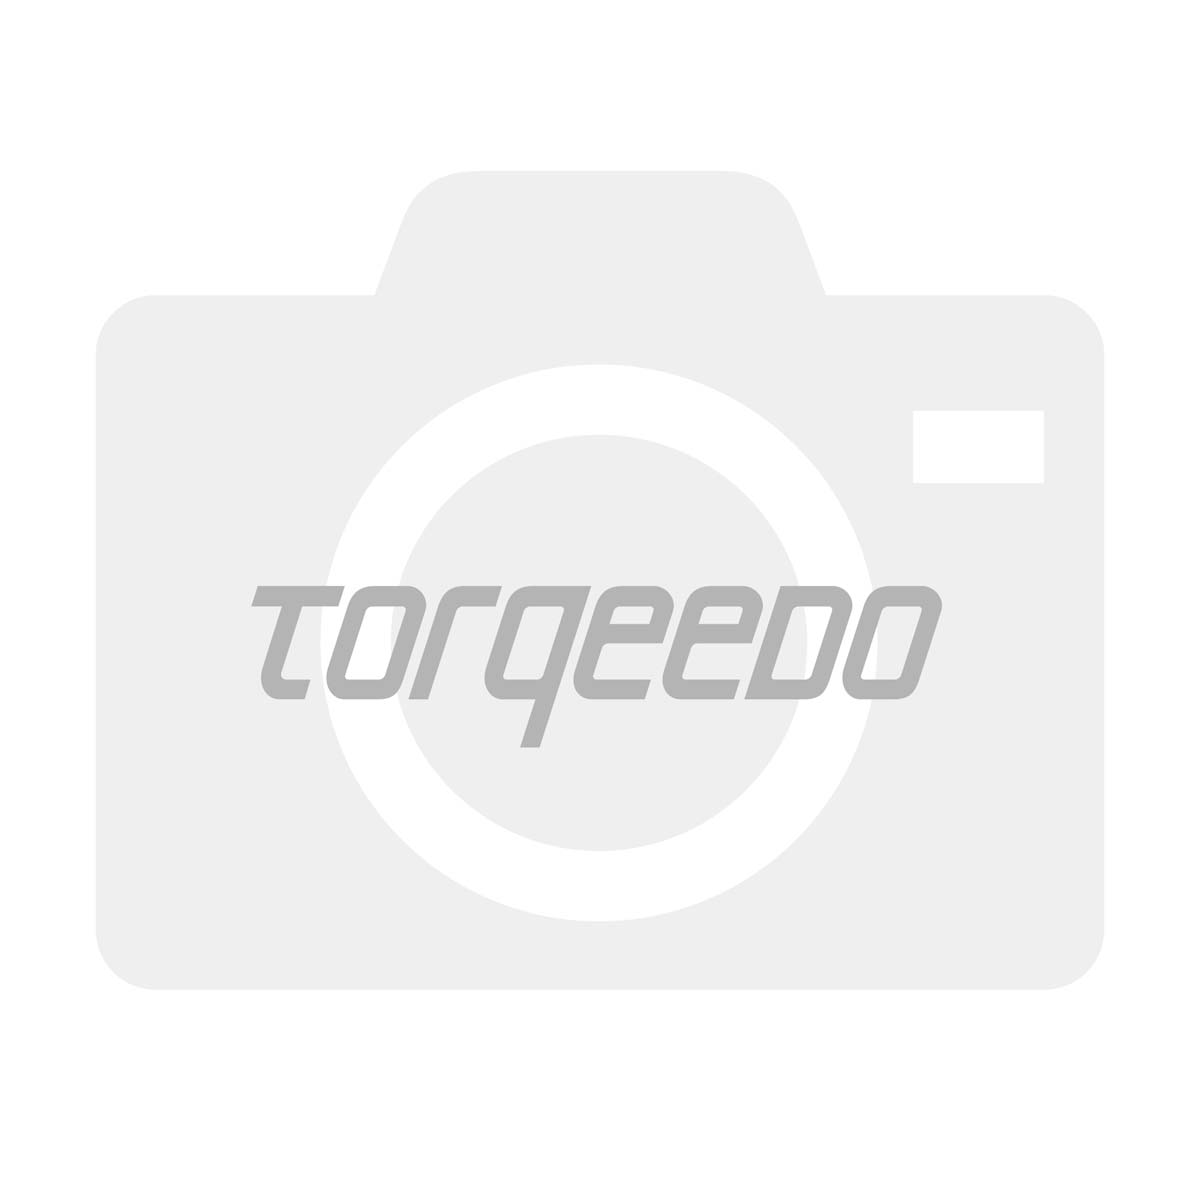 Torqeedo Cable extension for throttle 0.5 m